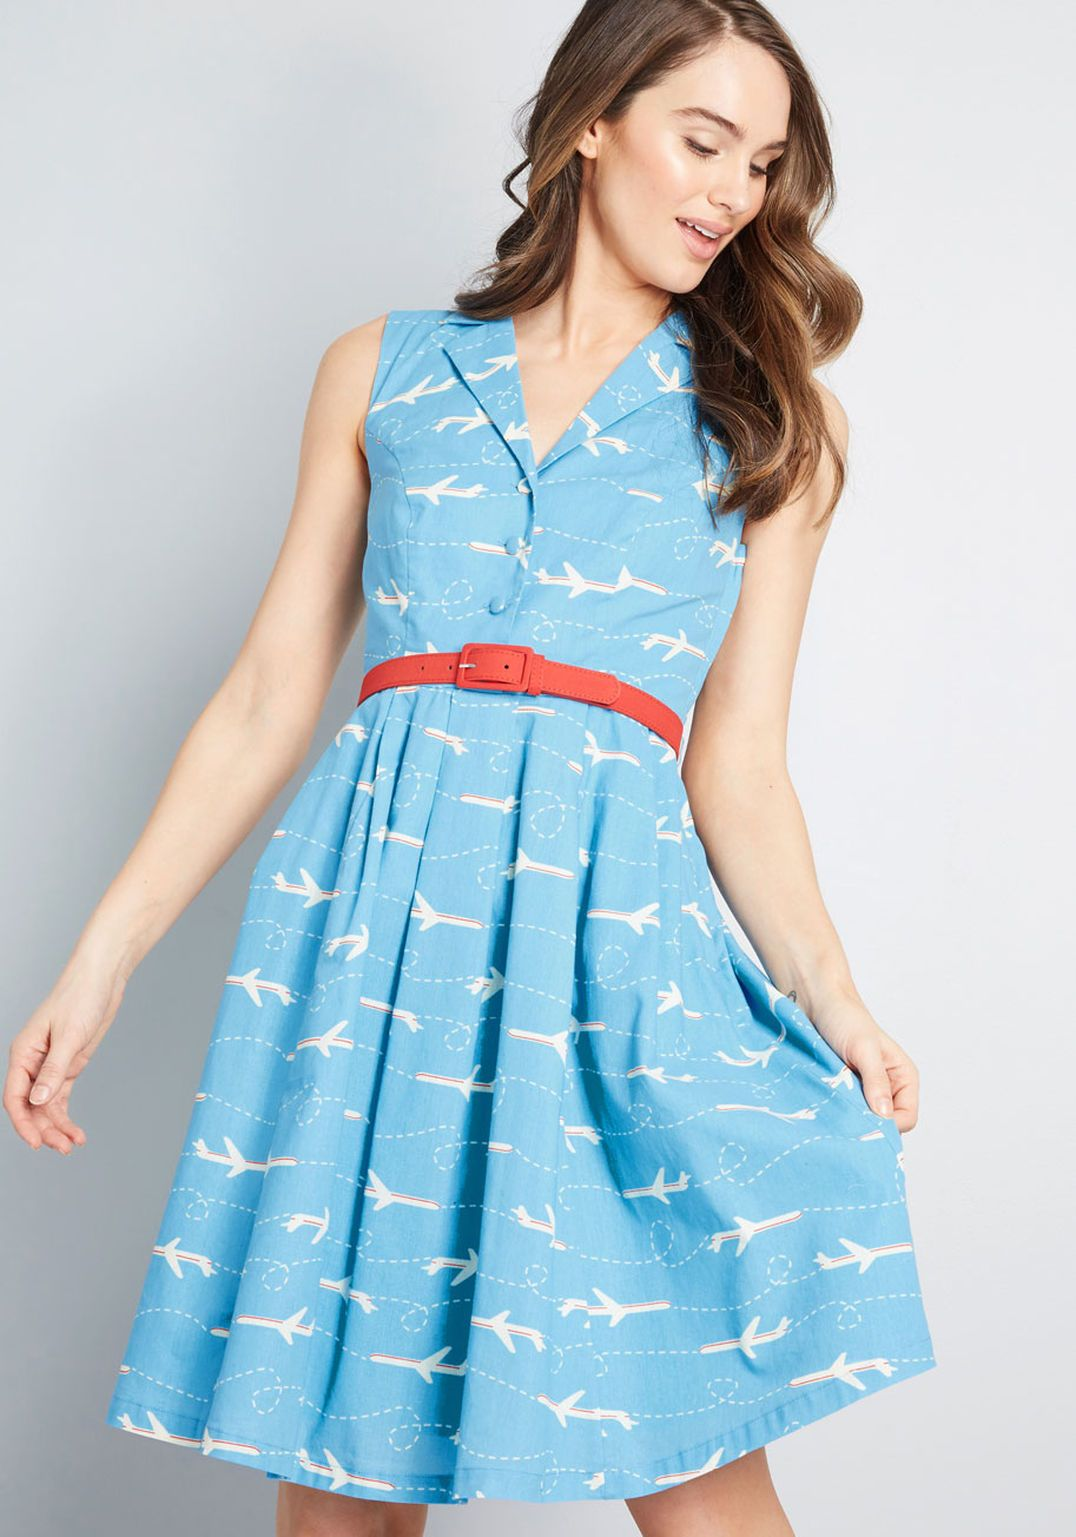 b21ea92695b It's an Inspired Taste Shirt Dress | Material Desires | Modcloth ...